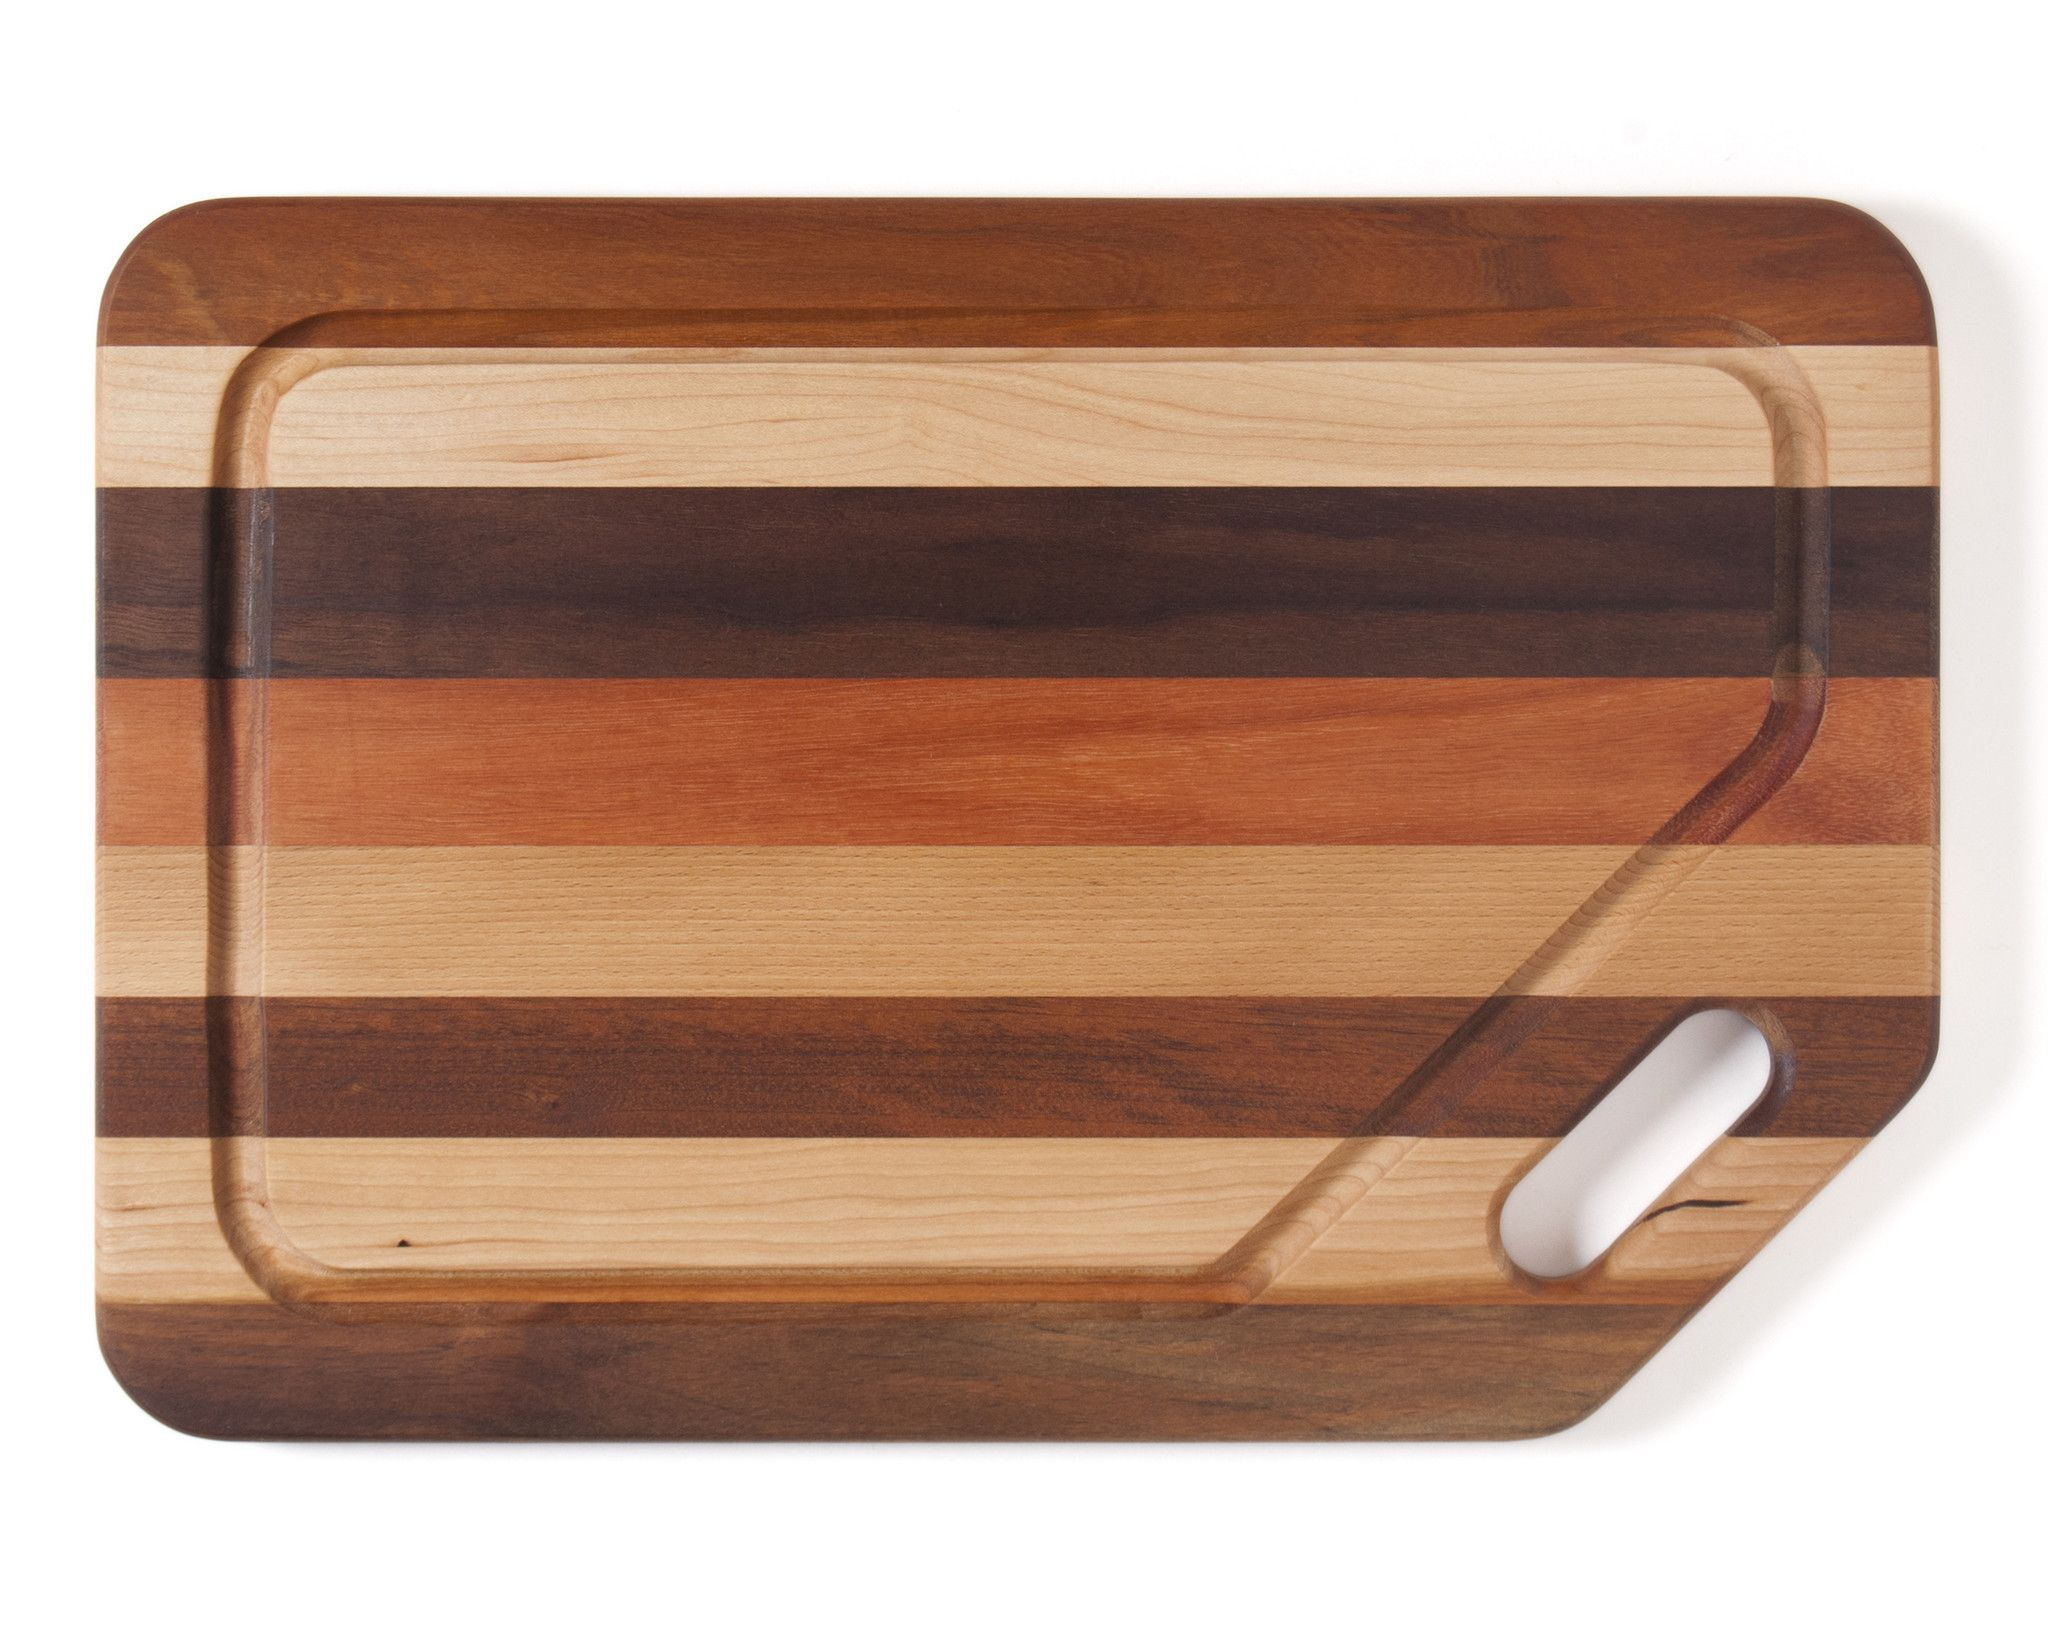 Kessler Woodworking Has Been Building Fine Wood Cutting Boards And Custom Furniture In Their Montague Michigan